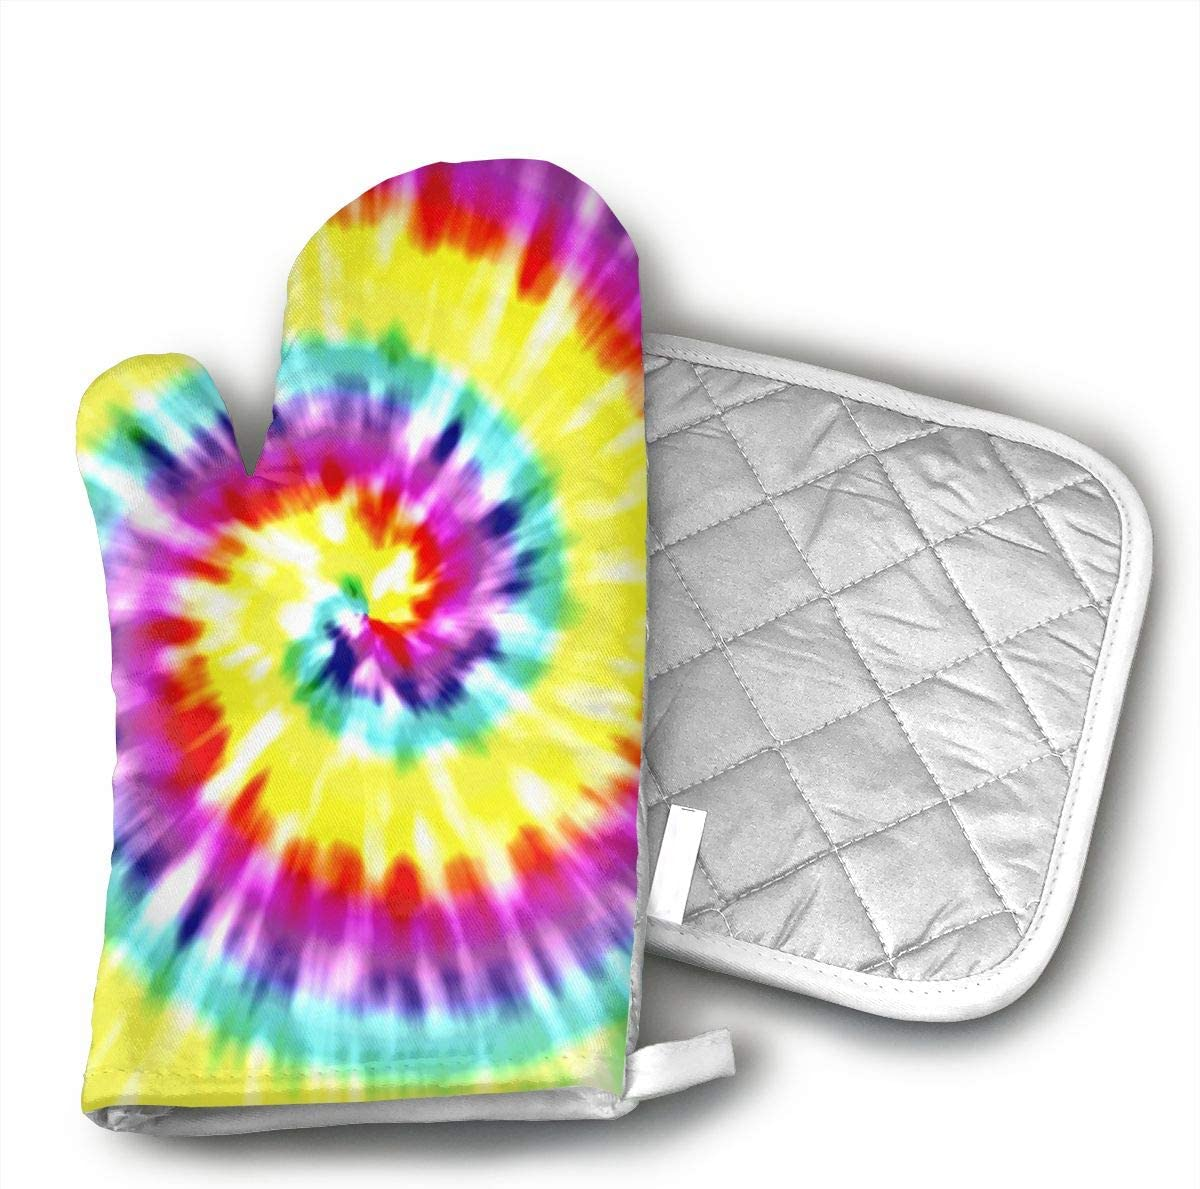 TMVFPYR Unique Tye Dye Art Oven Mitts, Non-Slip Silicone Oven Mitts, Extra Long Kitchen Mitts, Heat Resistant to 500Fahrenheit Degrees Kitchen Oven Gloves